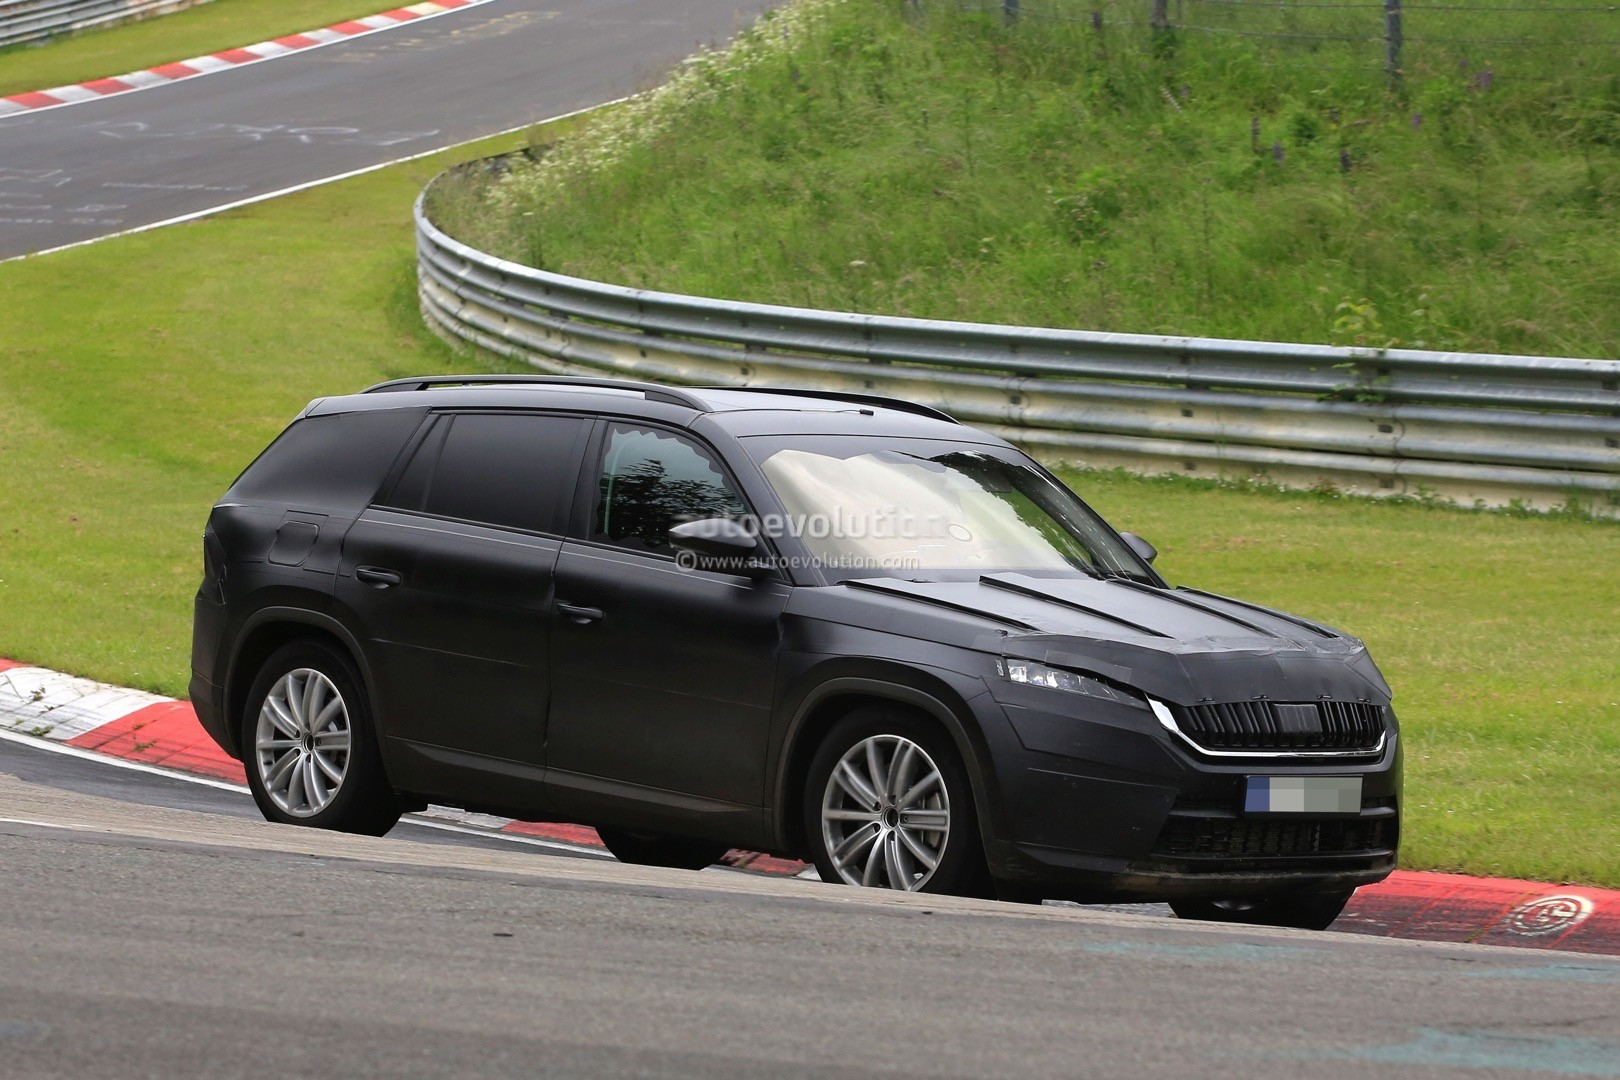 2017 Skoda Kodiaq Spied, Looks Out of Place Lapping the Nurburgring - autoevolution